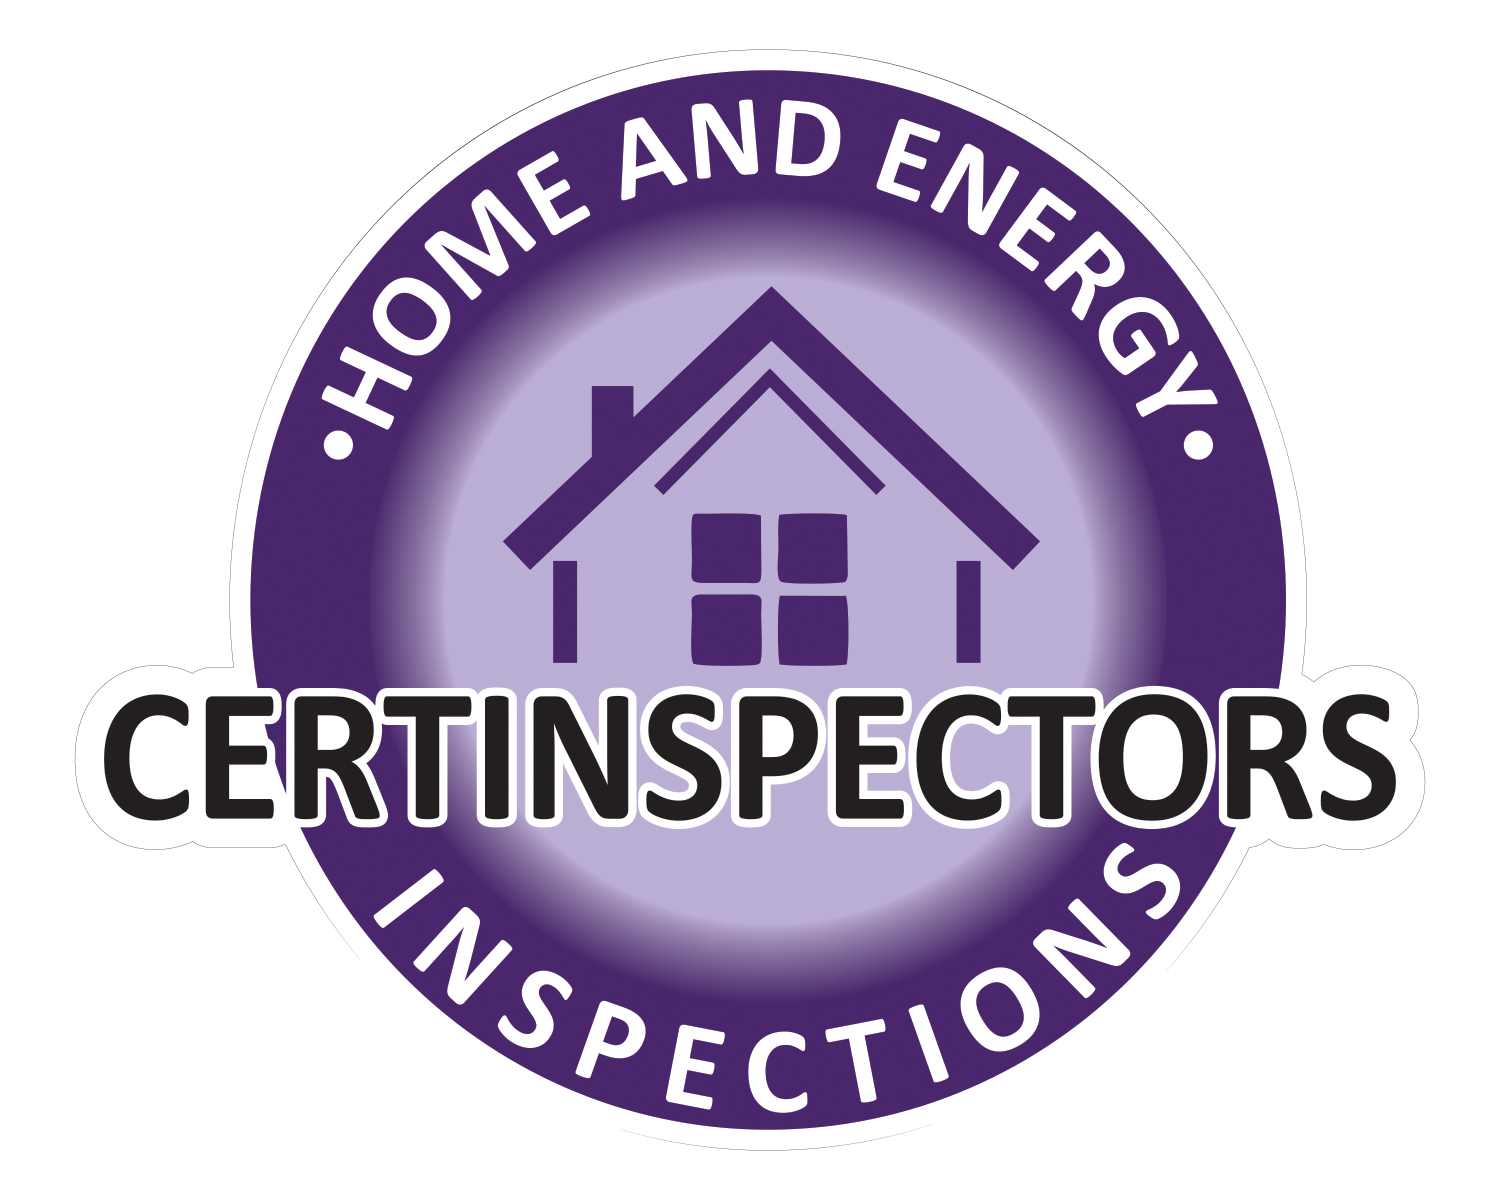 Certinspectors Home and Energy Inspections